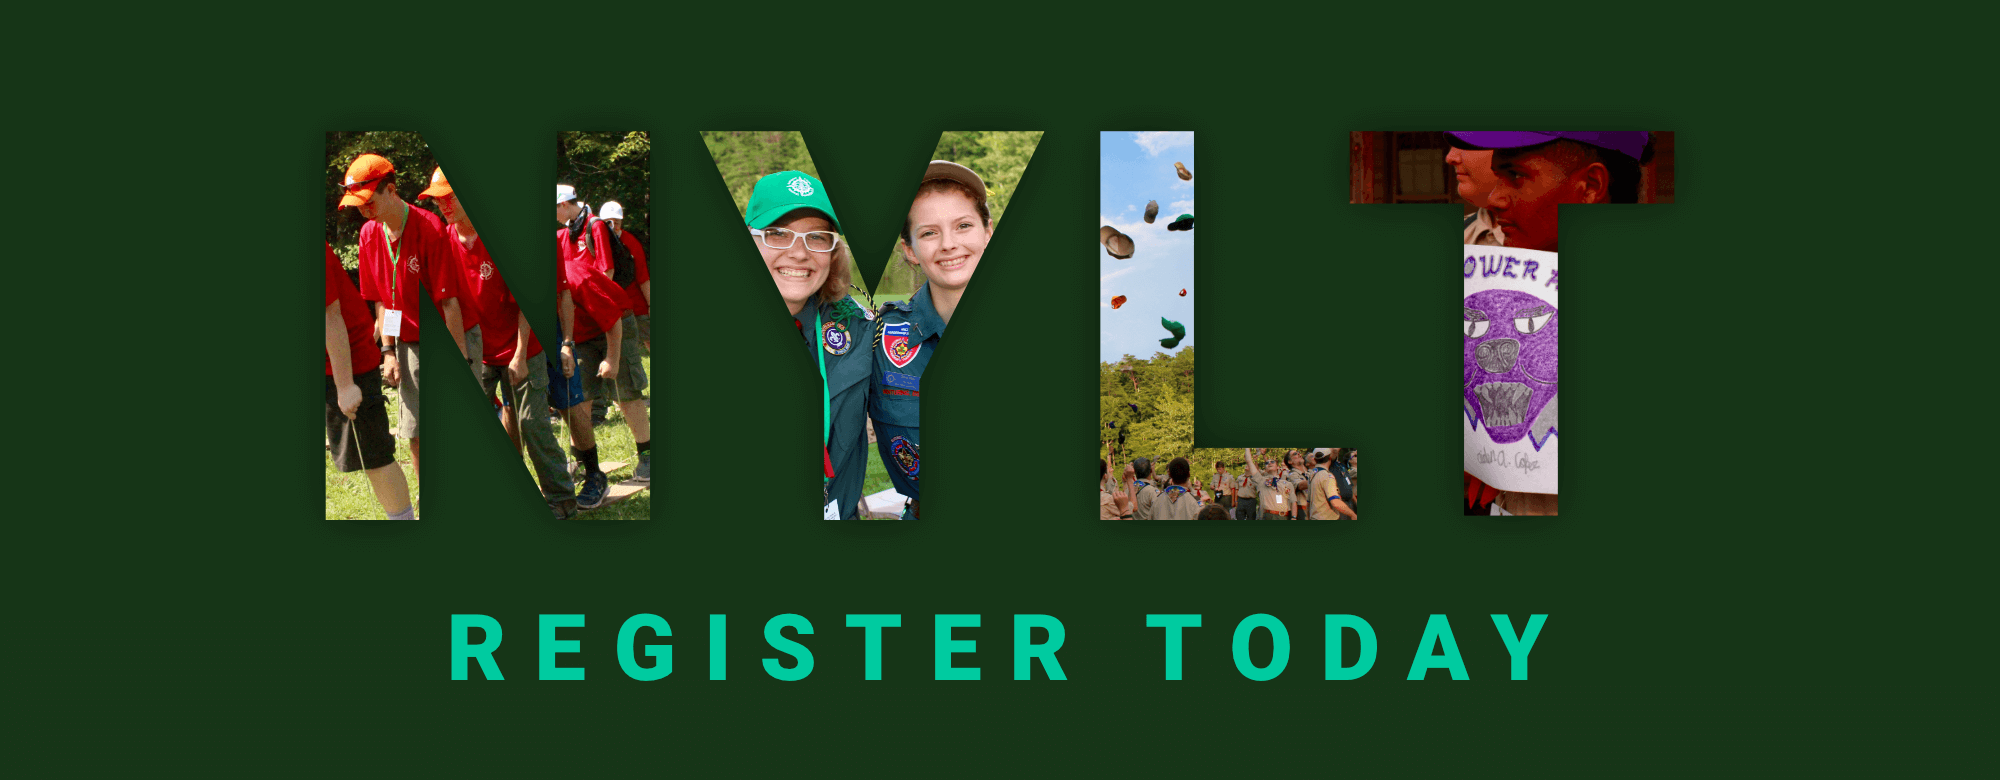 National Youth Leadership Training is an amazing leadership course for youth. Register now!